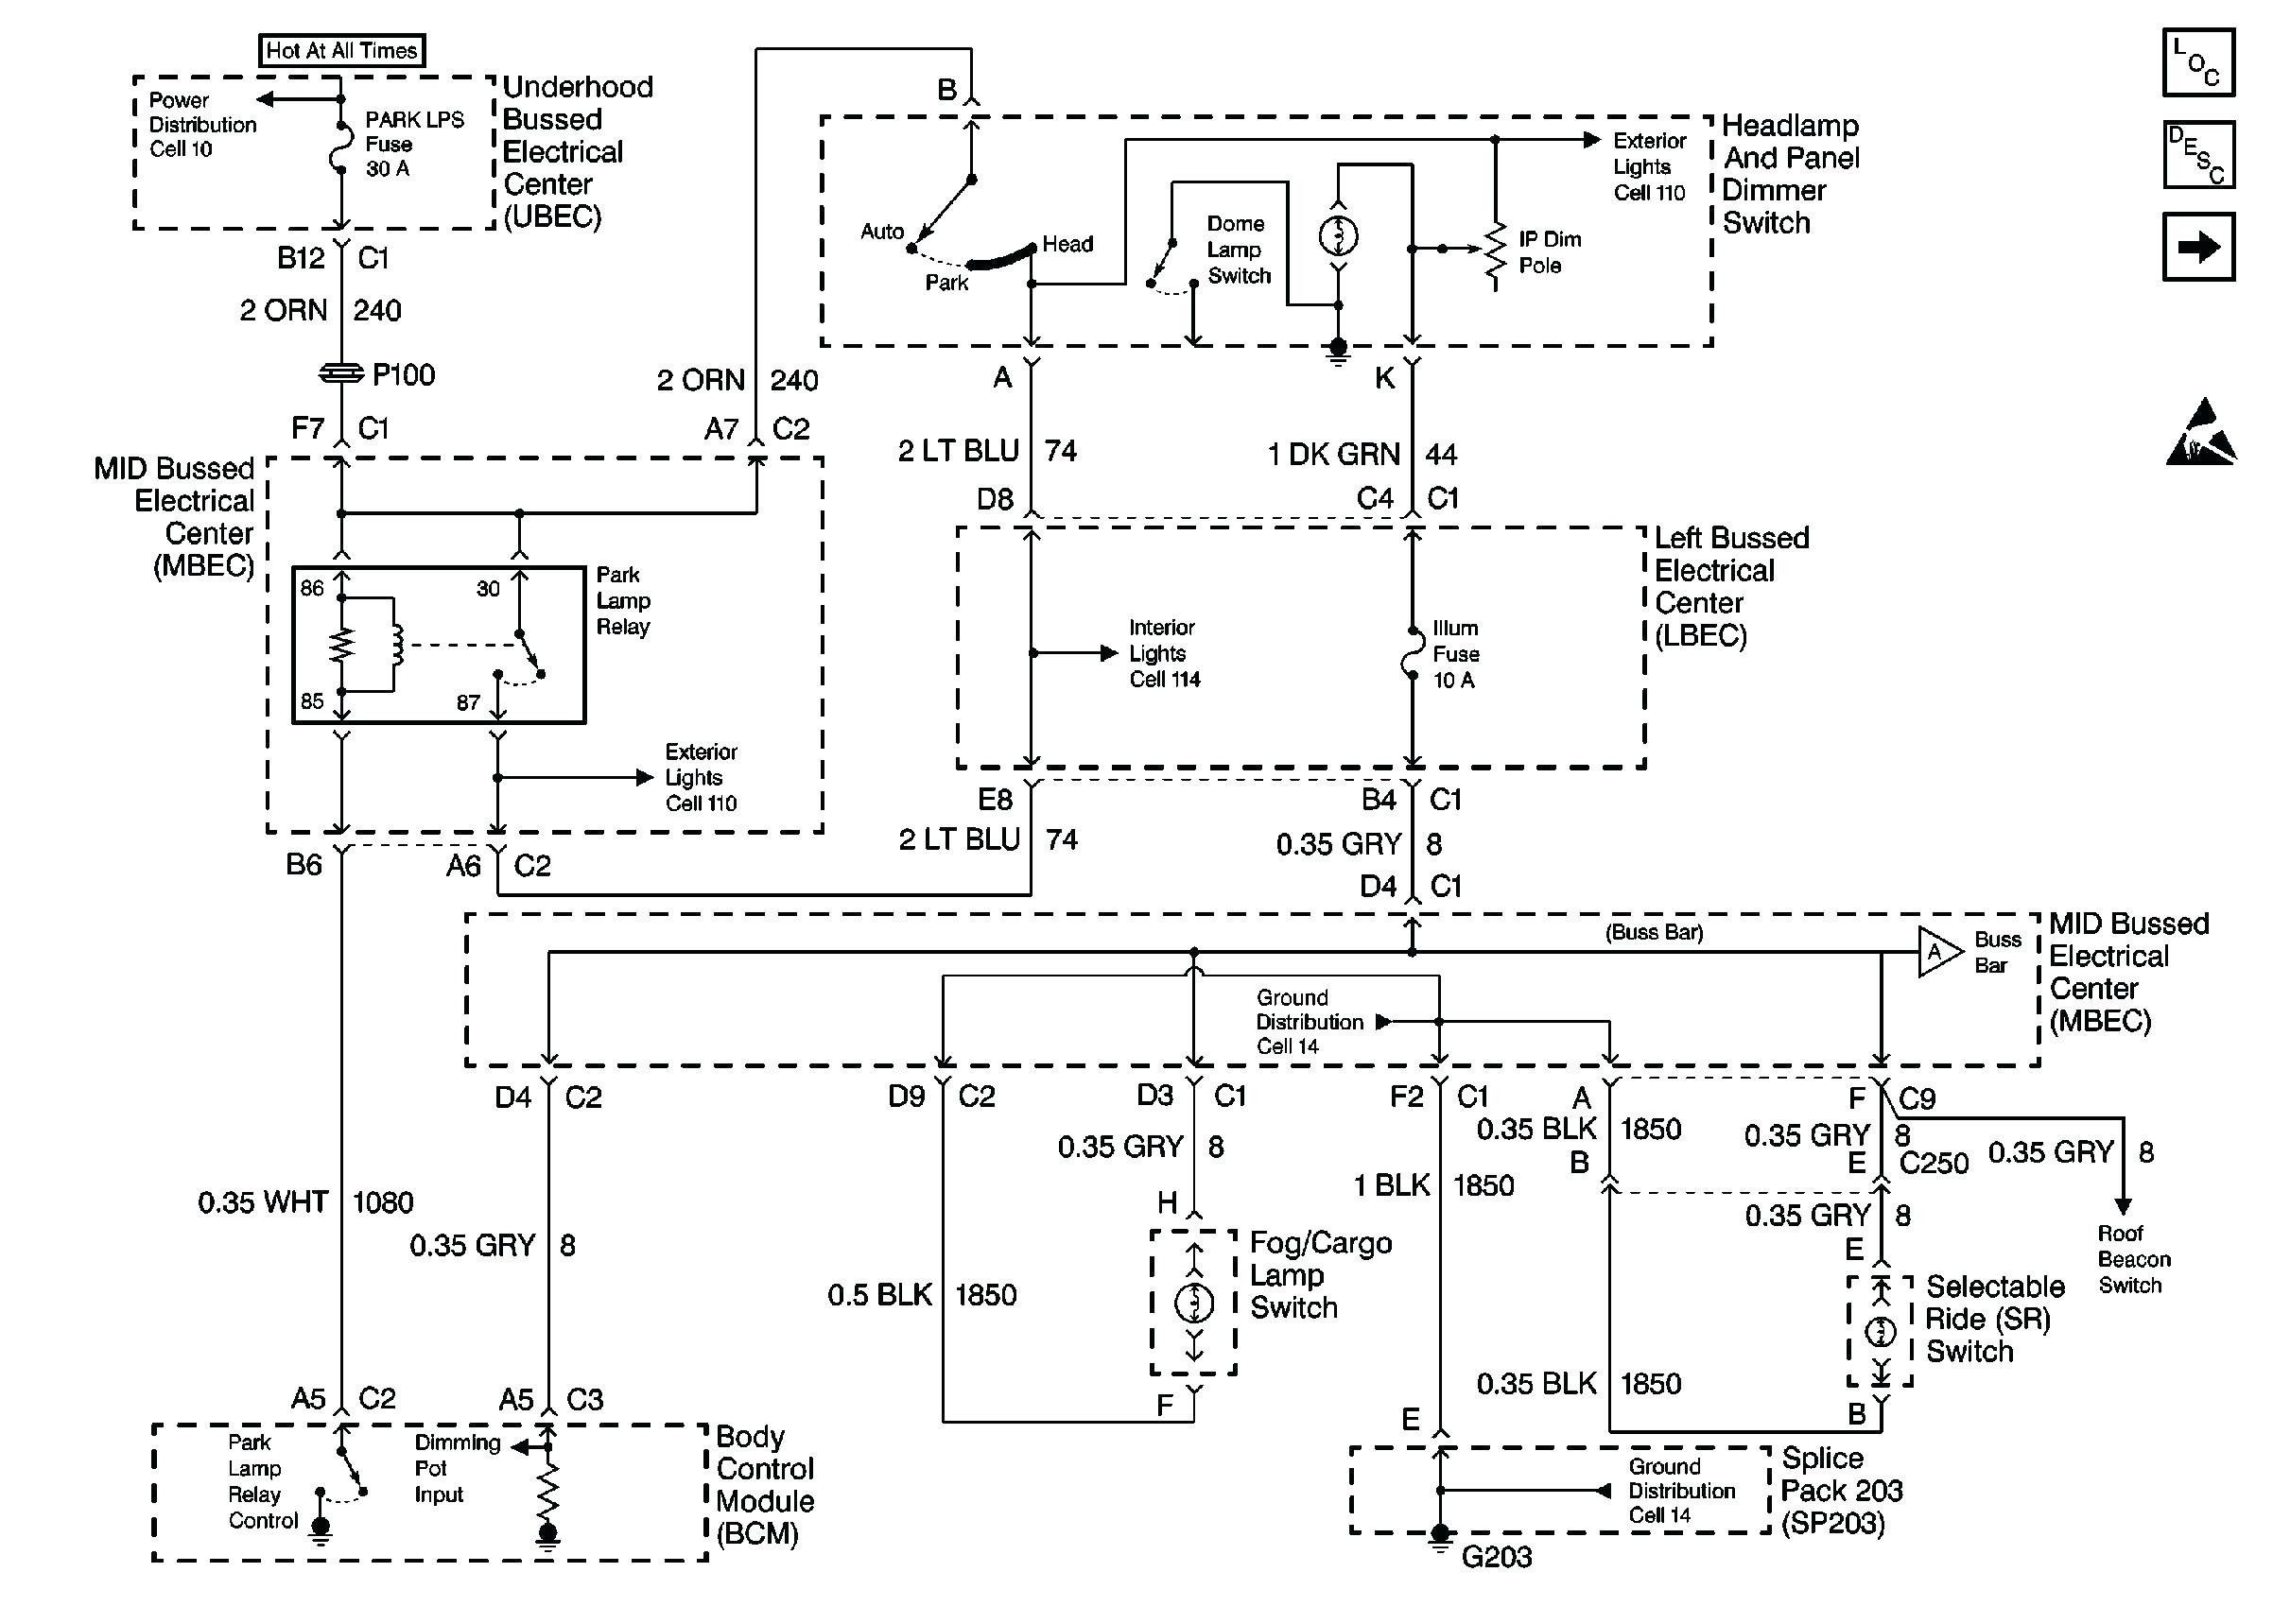 Wiring Diagram Pt - 1997 Chevy Cavalier Stereo Wiring Diagram for Wiring  Diagram SchematicsWiring Diagram Schematics